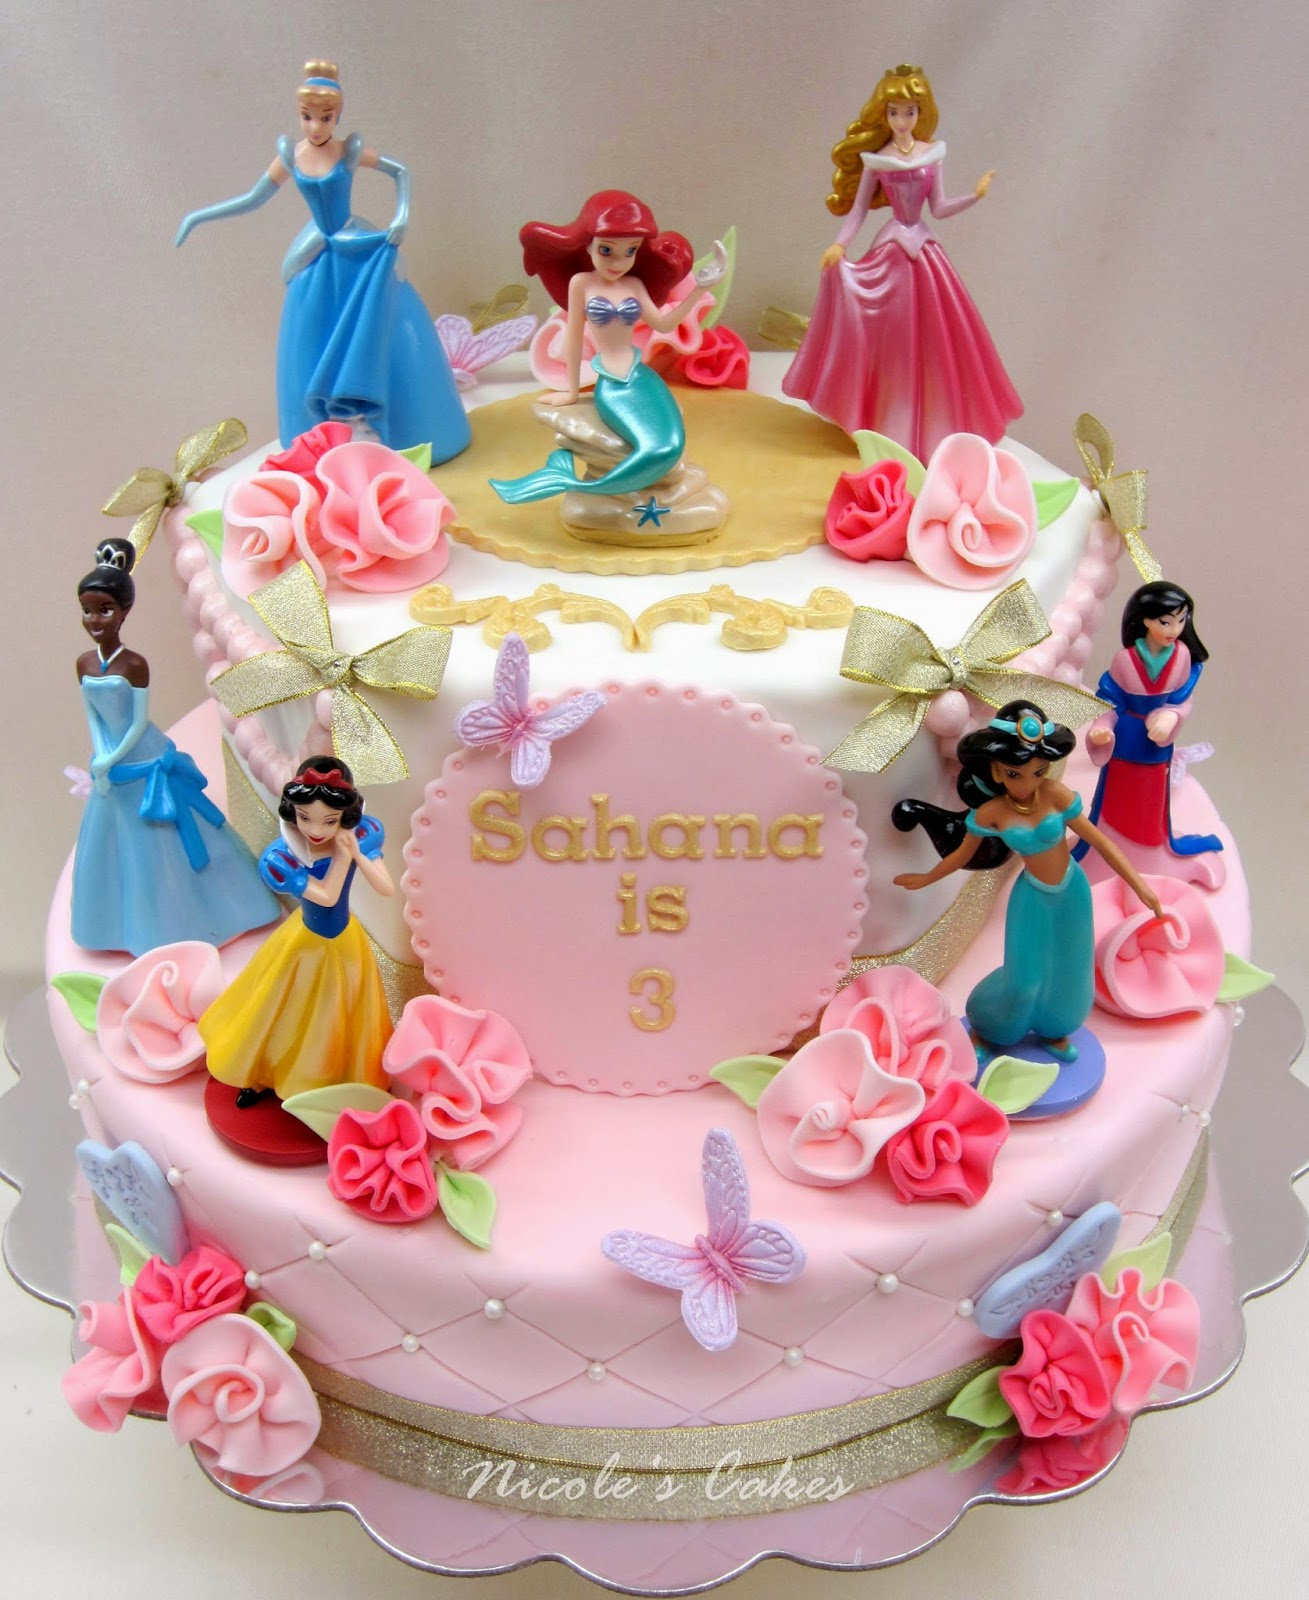 Confections, Cakes & Creations!: Gorgeous Pink Princess Cake!